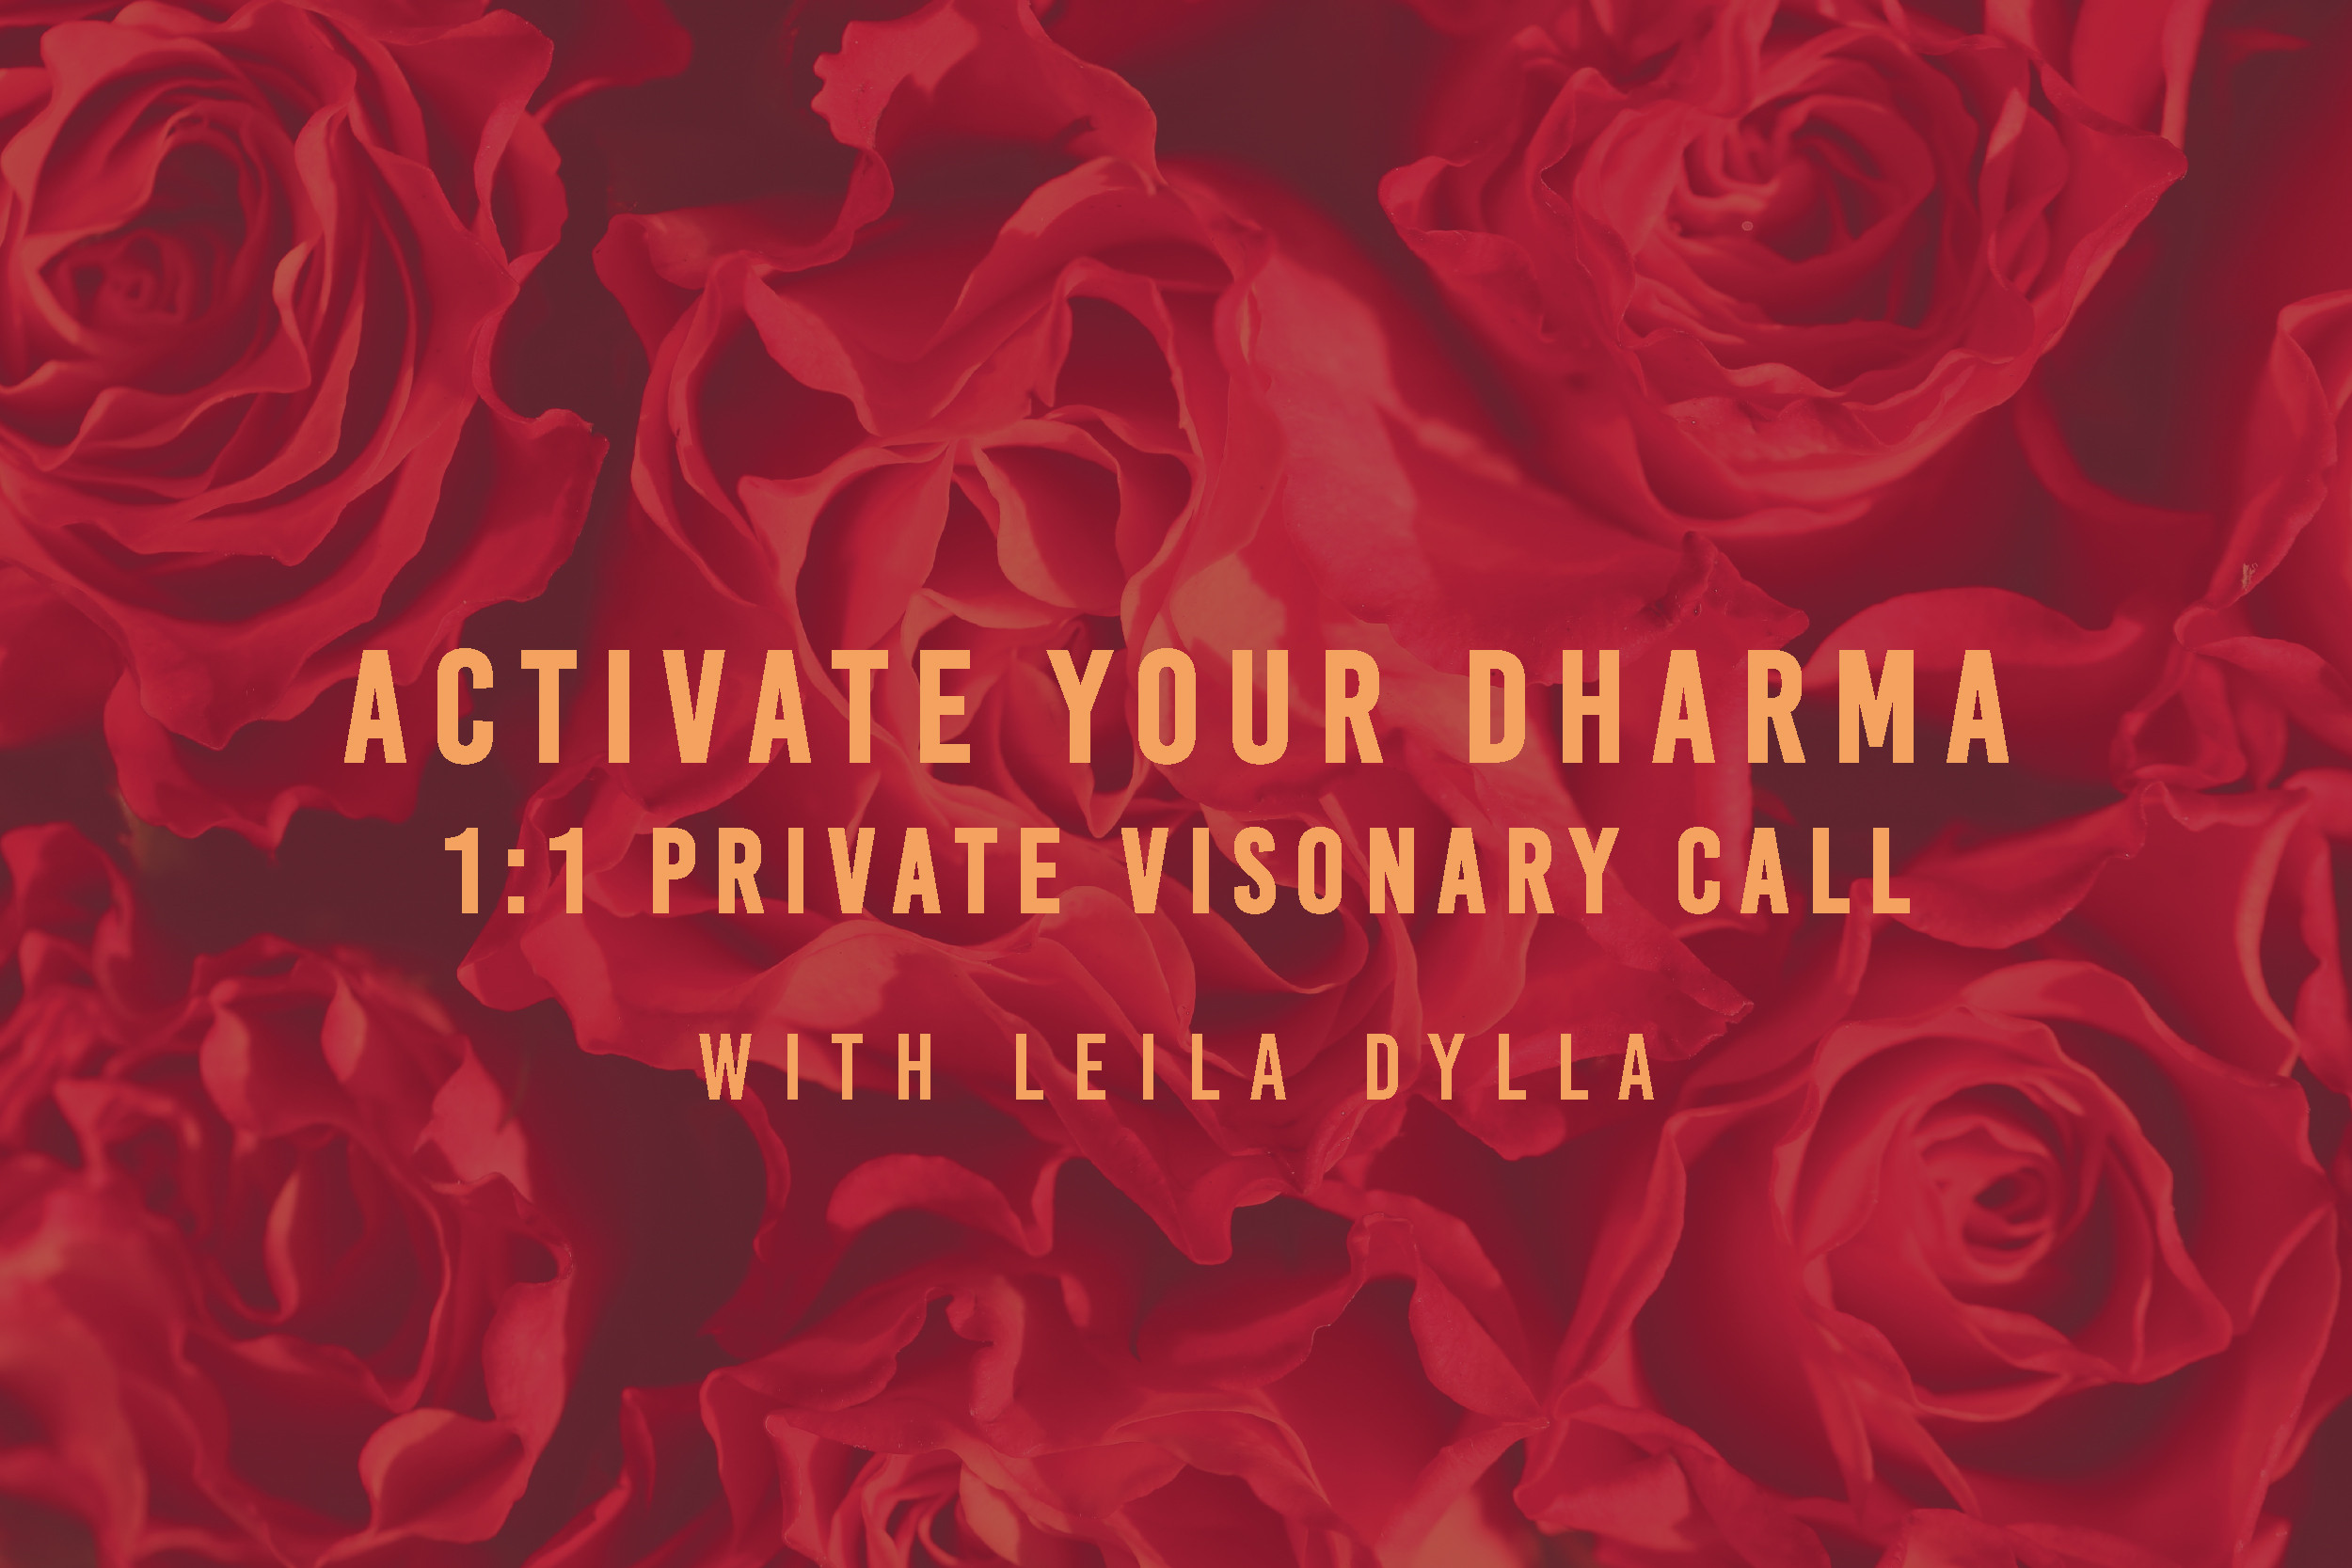 Activate Your Dharma, 1:1 Visionary Call